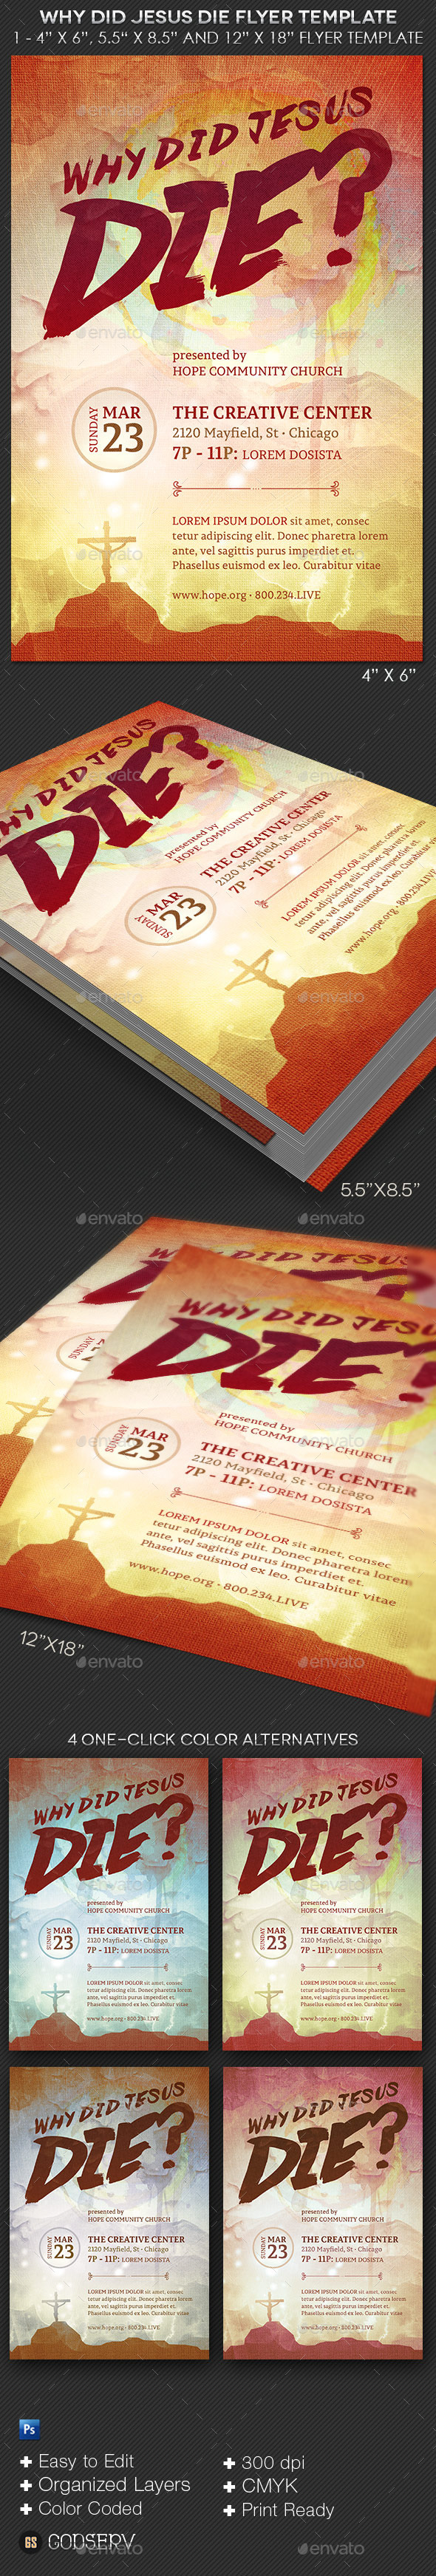 GraphicRiver Why Did Jesus Die Church Flyer Template 10654909